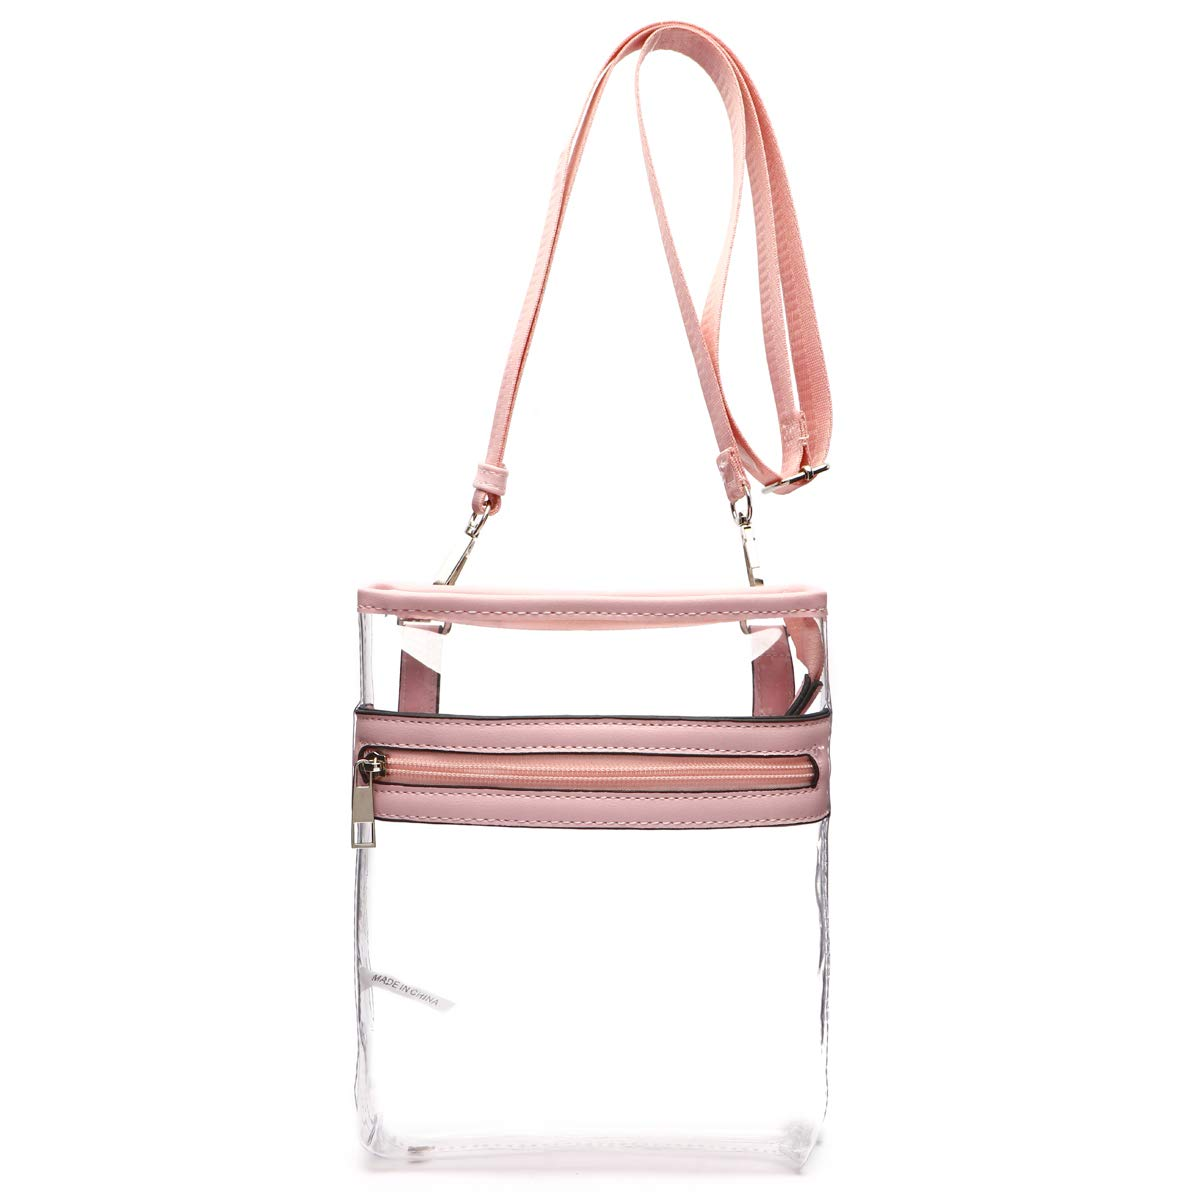 Clear Bag NFL Stadiums Concerts Approved Crossbody